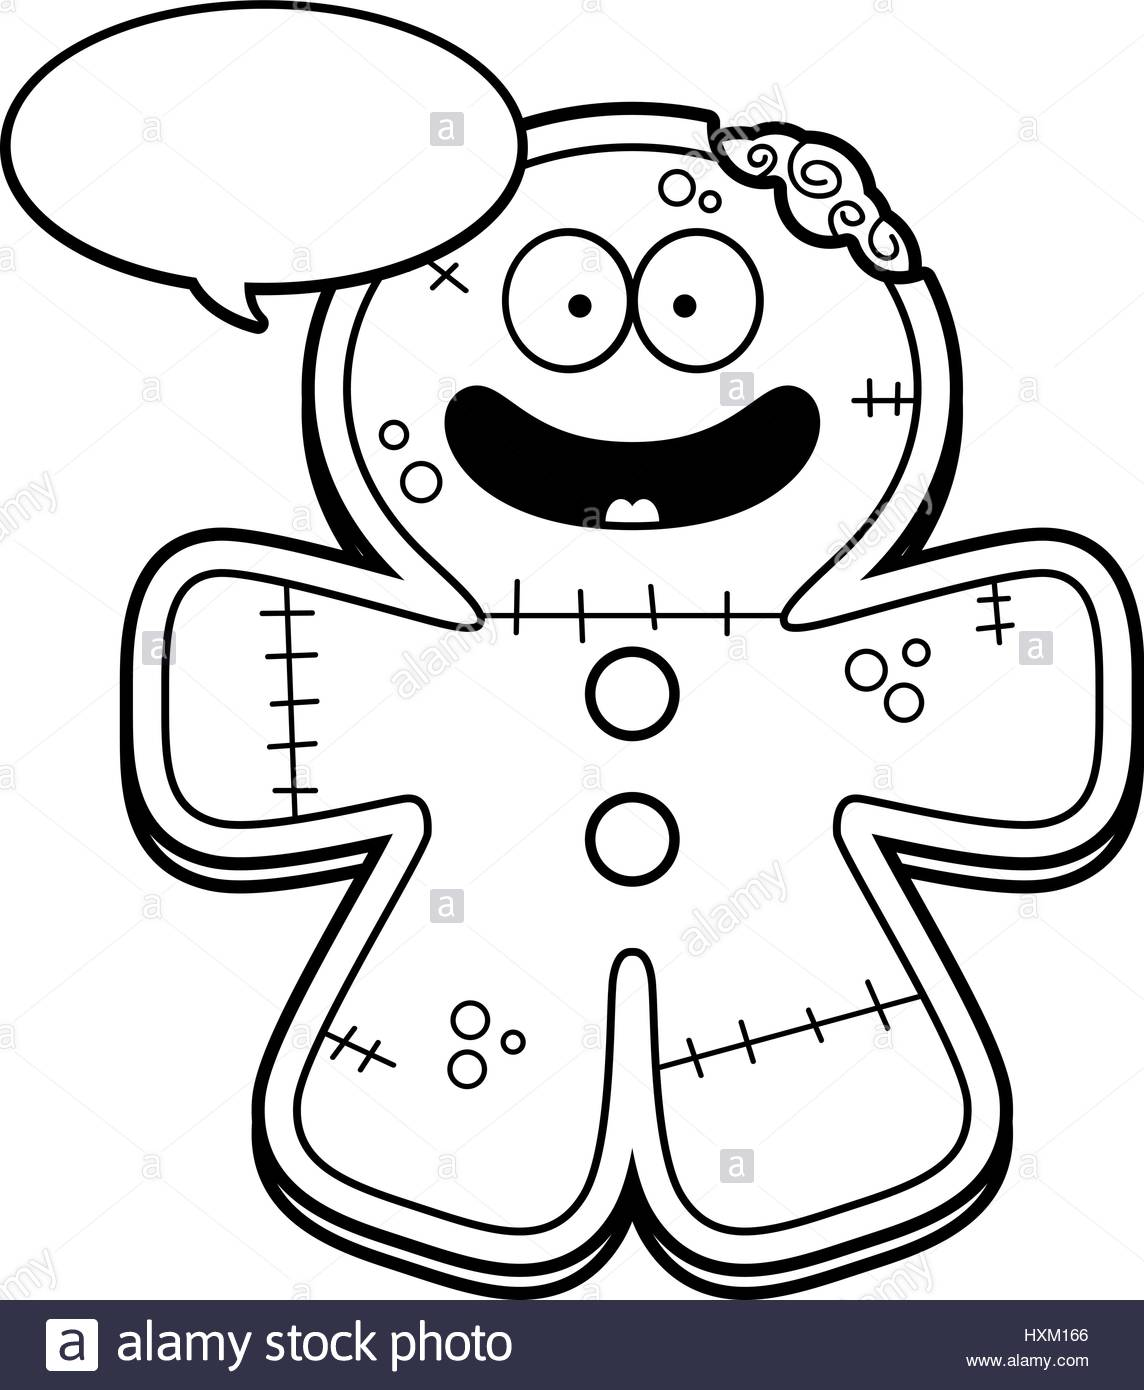 1144x1390 A Cartoon Illustration Of A Gingerbread Zombie Talking Stock